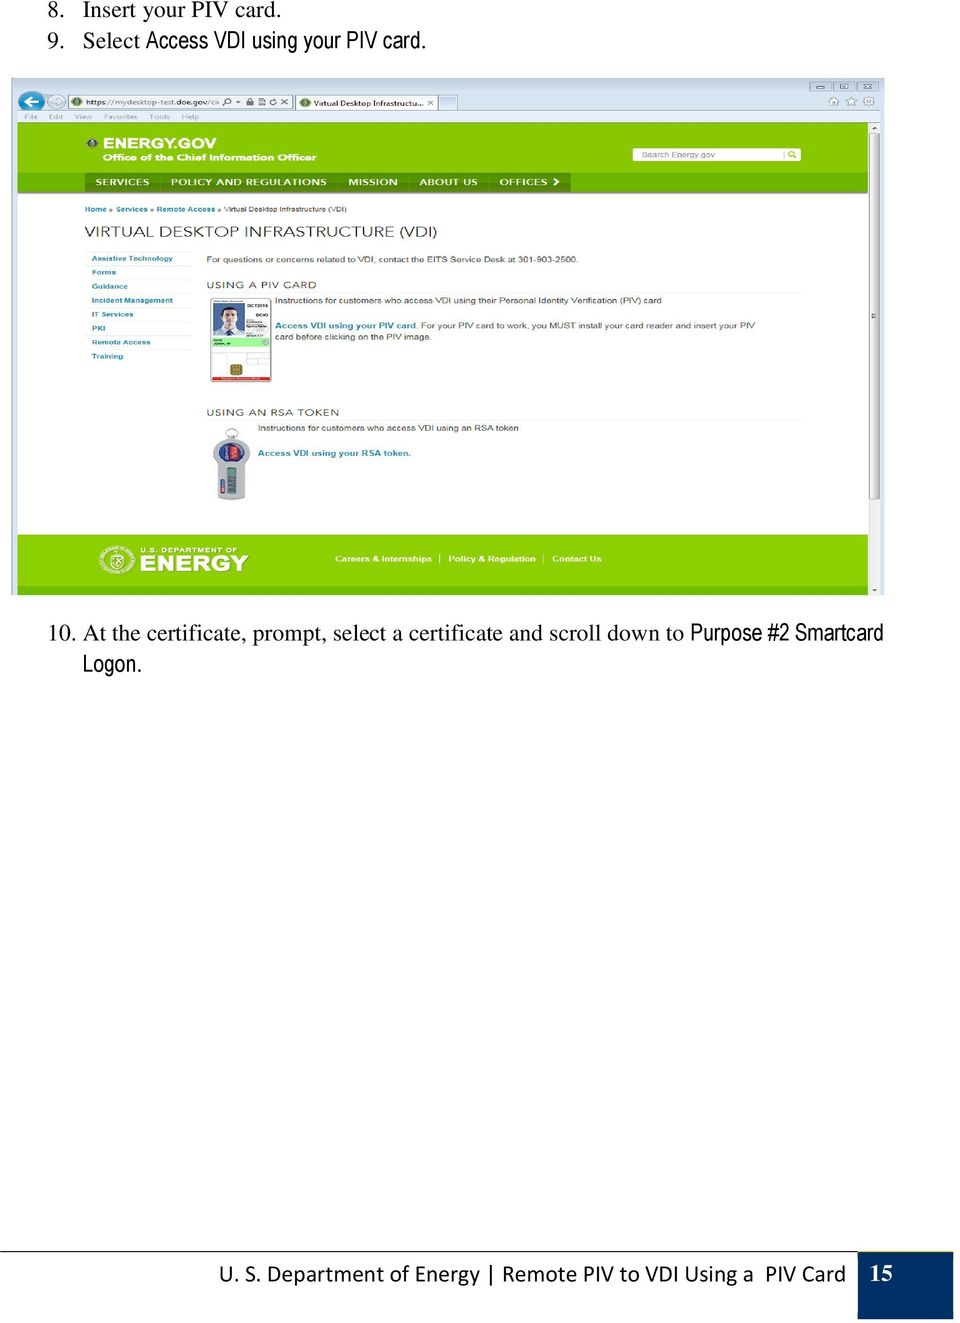 At the certificate, prompt, select a certificate and